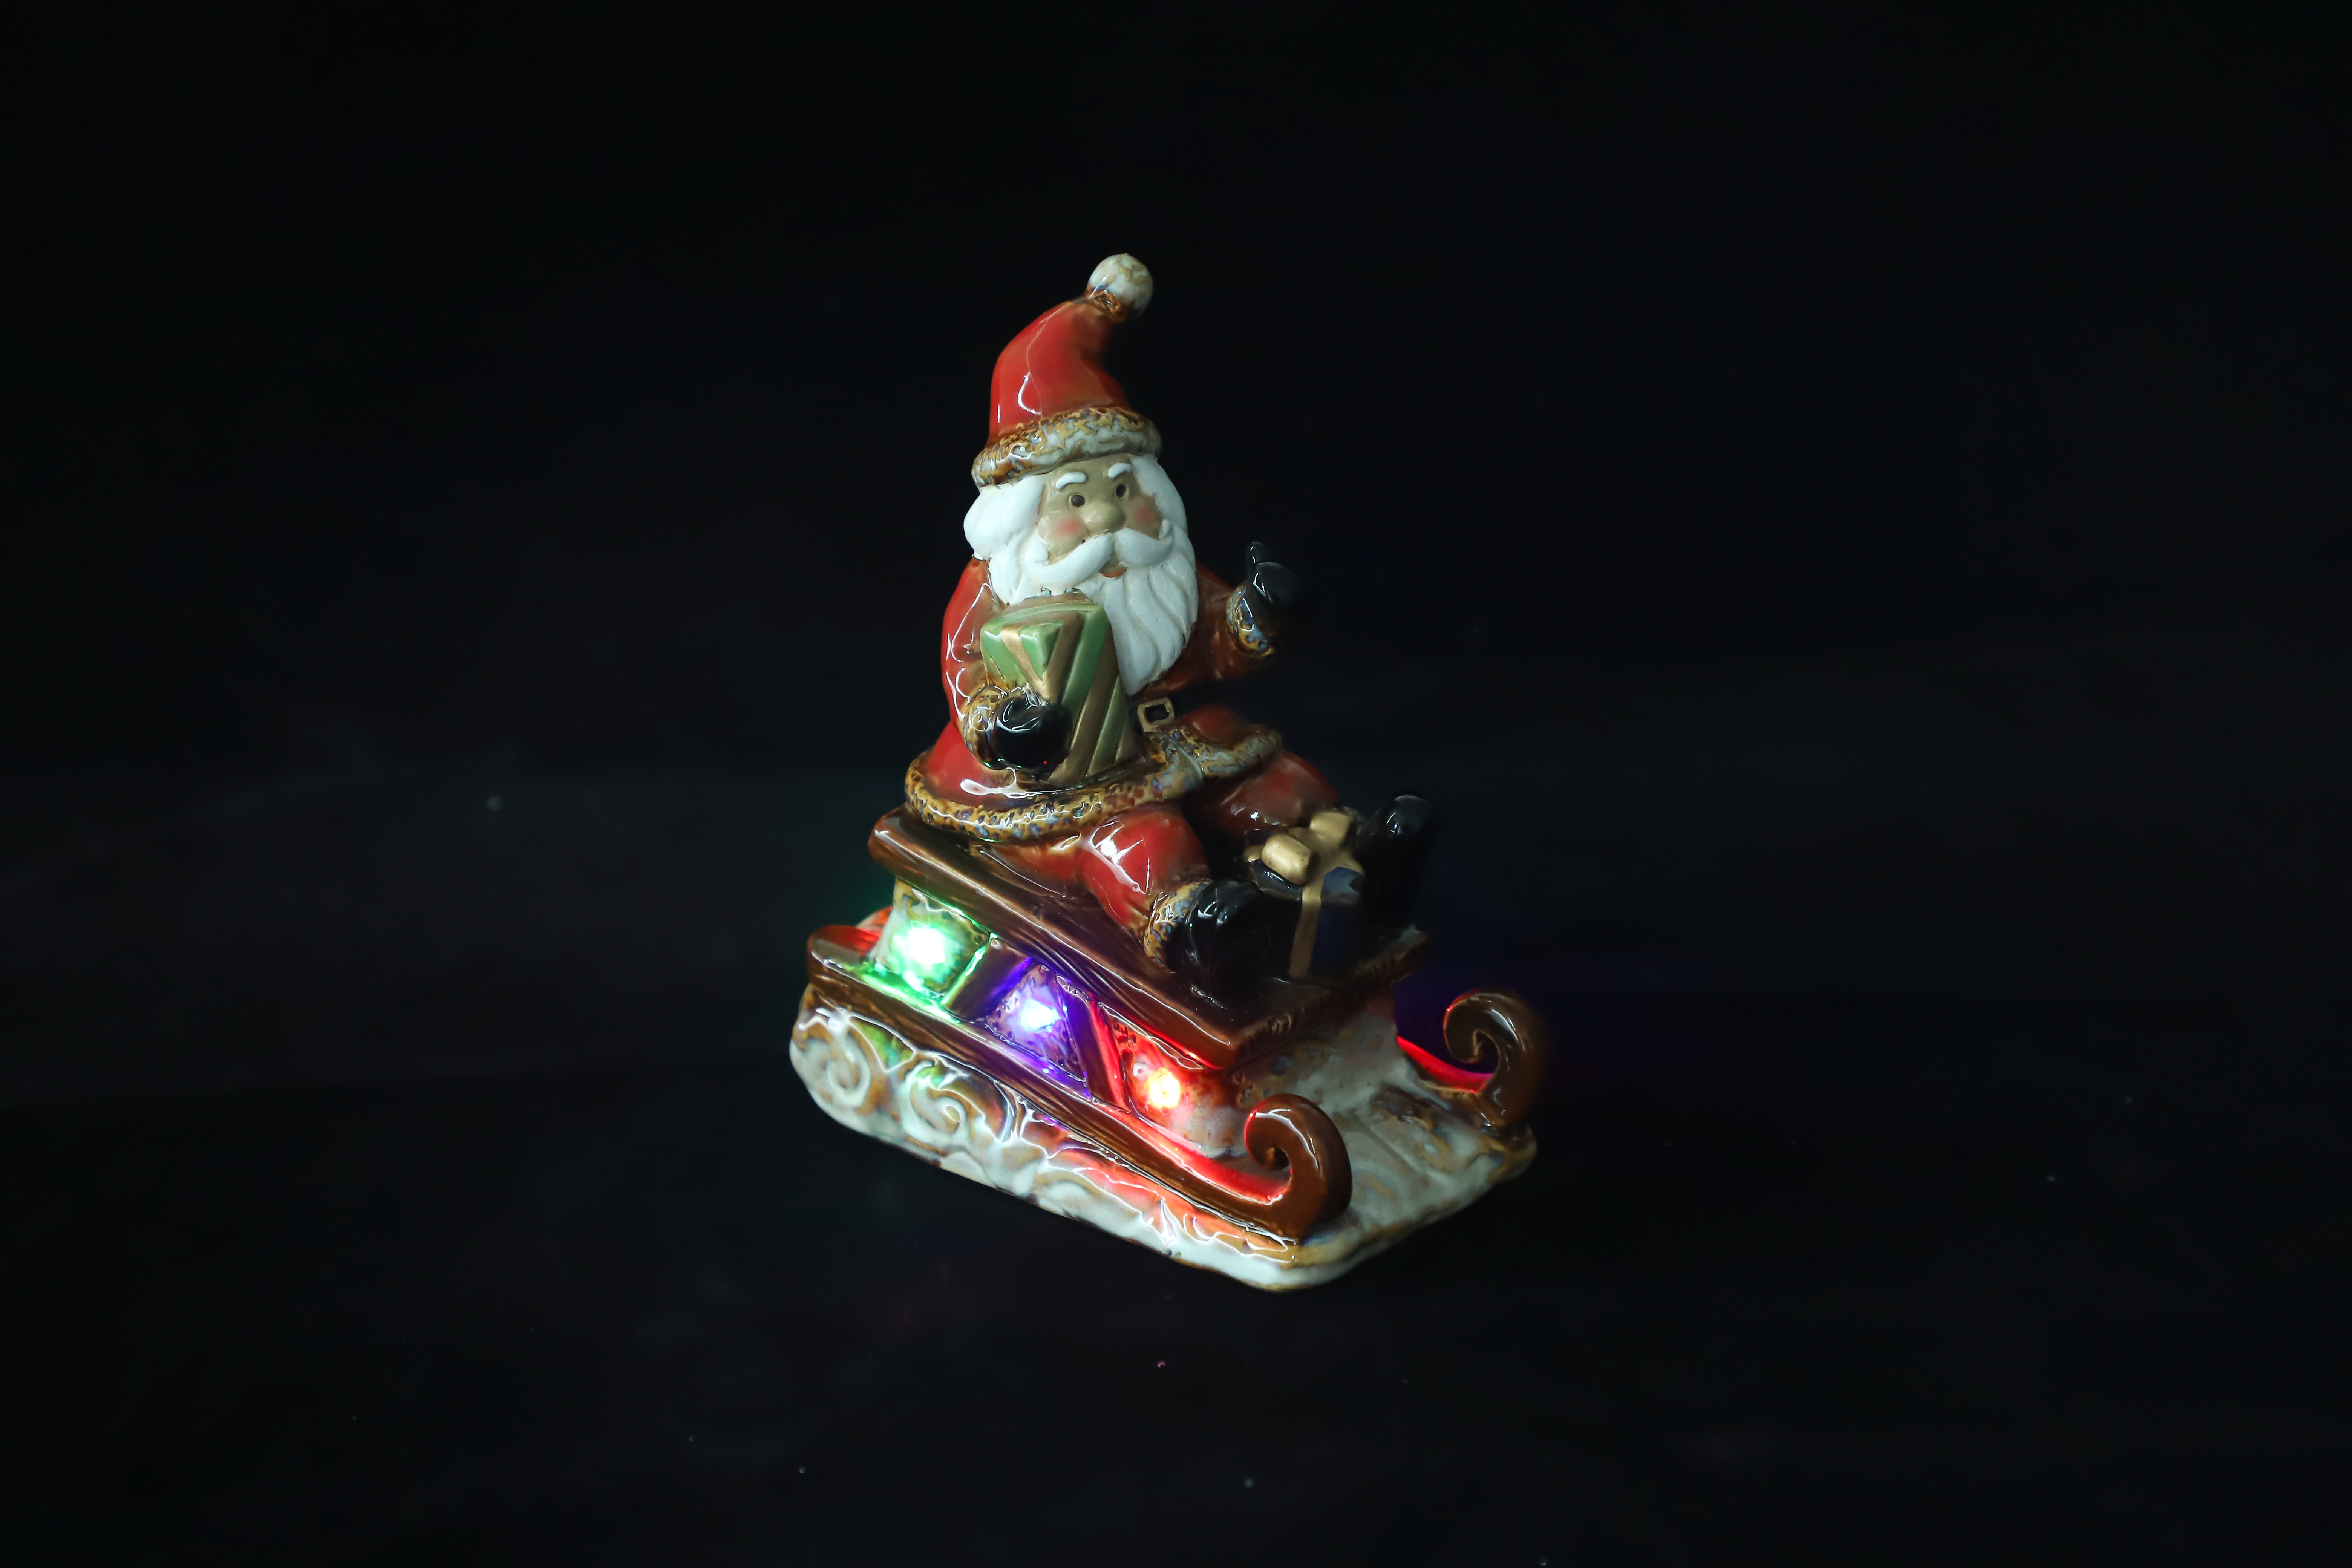 Lighted Festive Christmas Santa Sitting in Sled